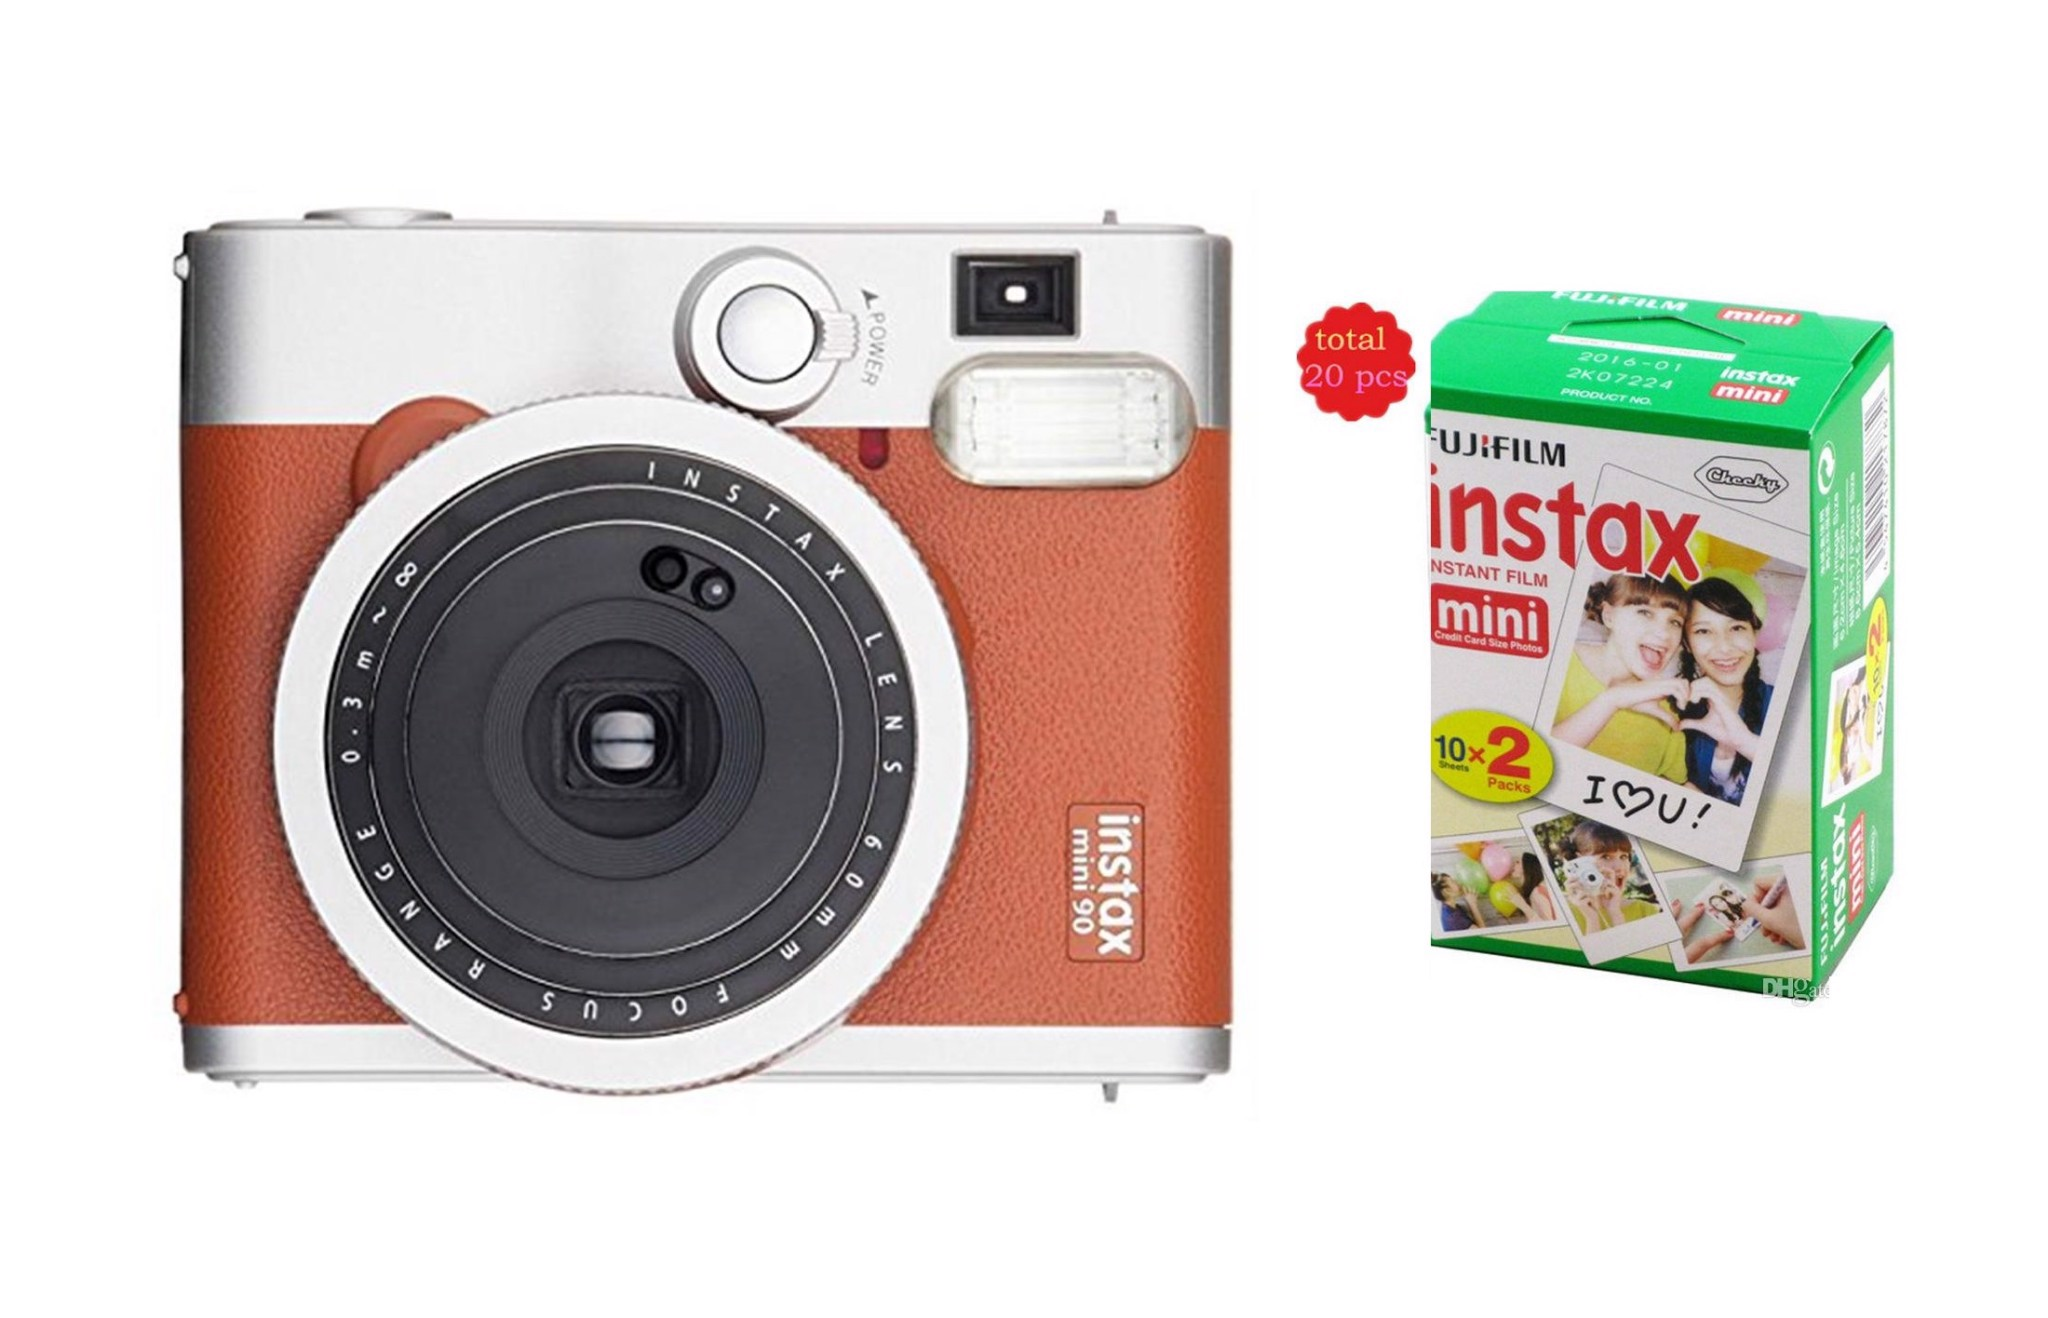 Fujifilm Instax Neo 90 ( Brown ) + Film 20